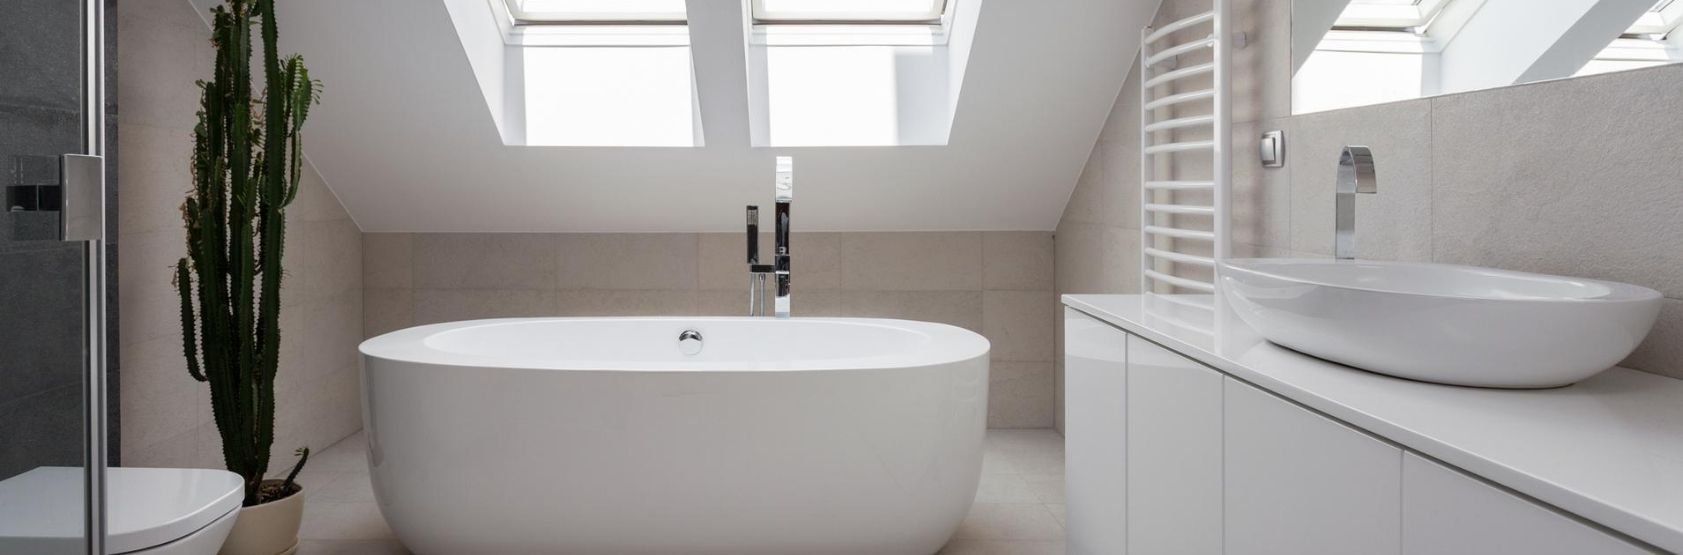 Bathroom-Fitting-Services-Dorset-Hampshire_11